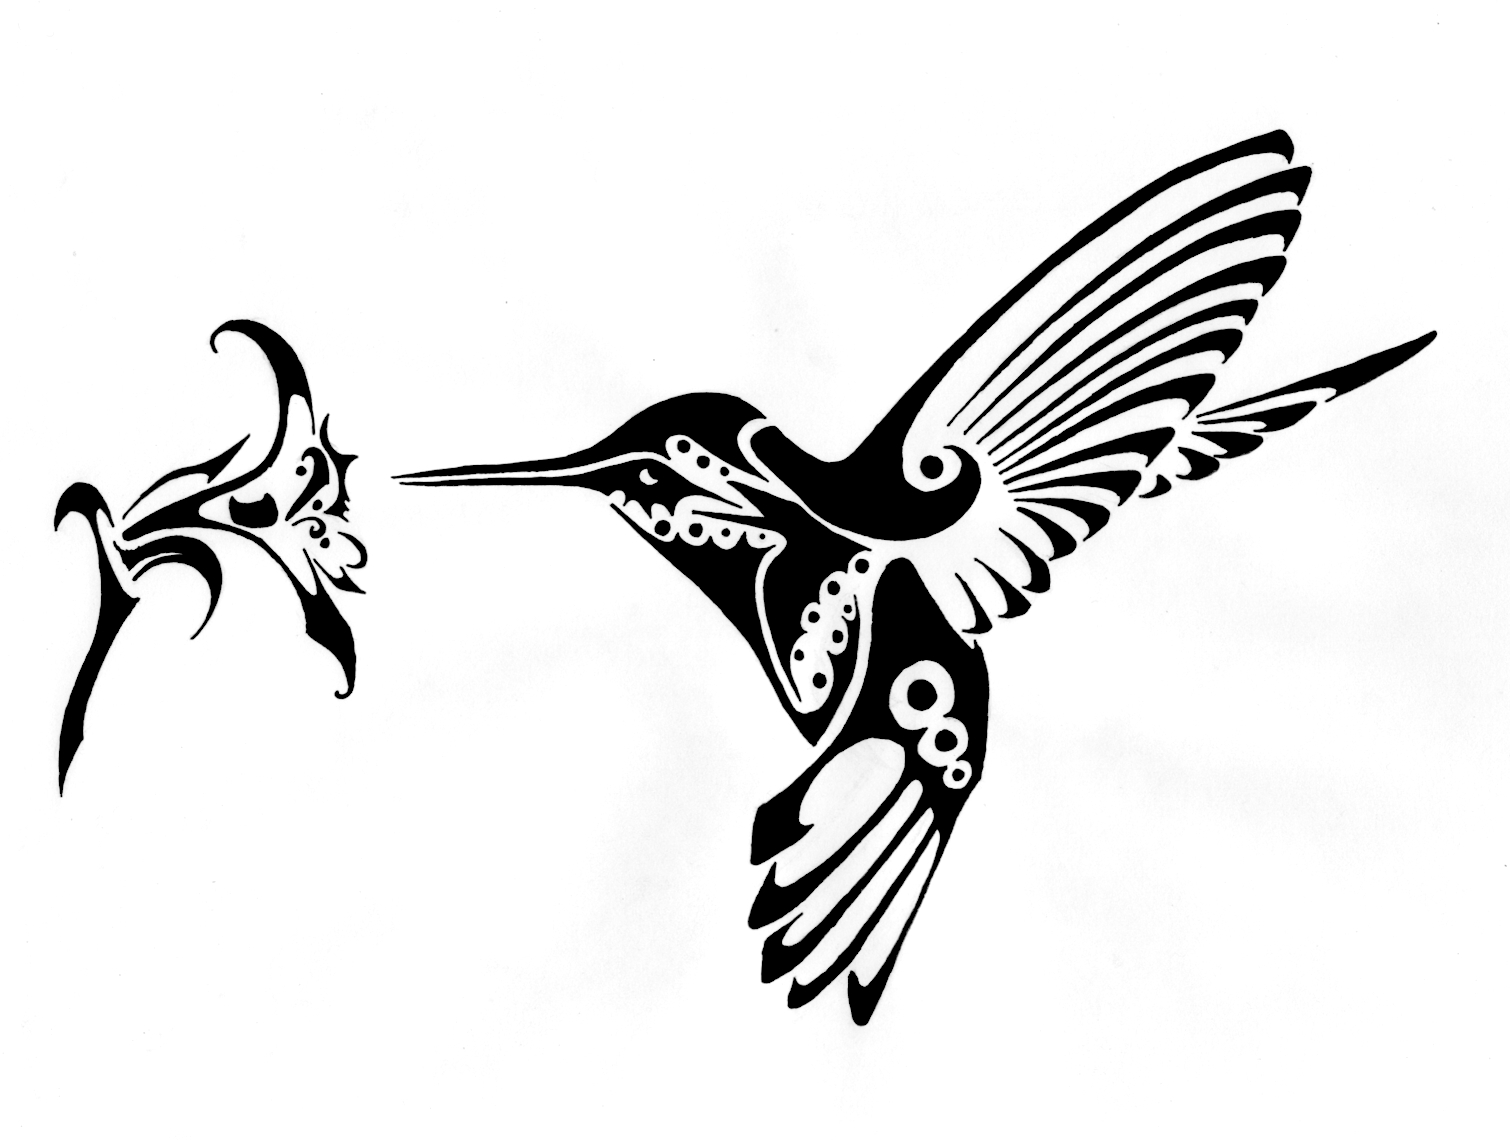 Hummingbird Drawings Free | Free download best Hummingbird Drawings ... image royalty free library